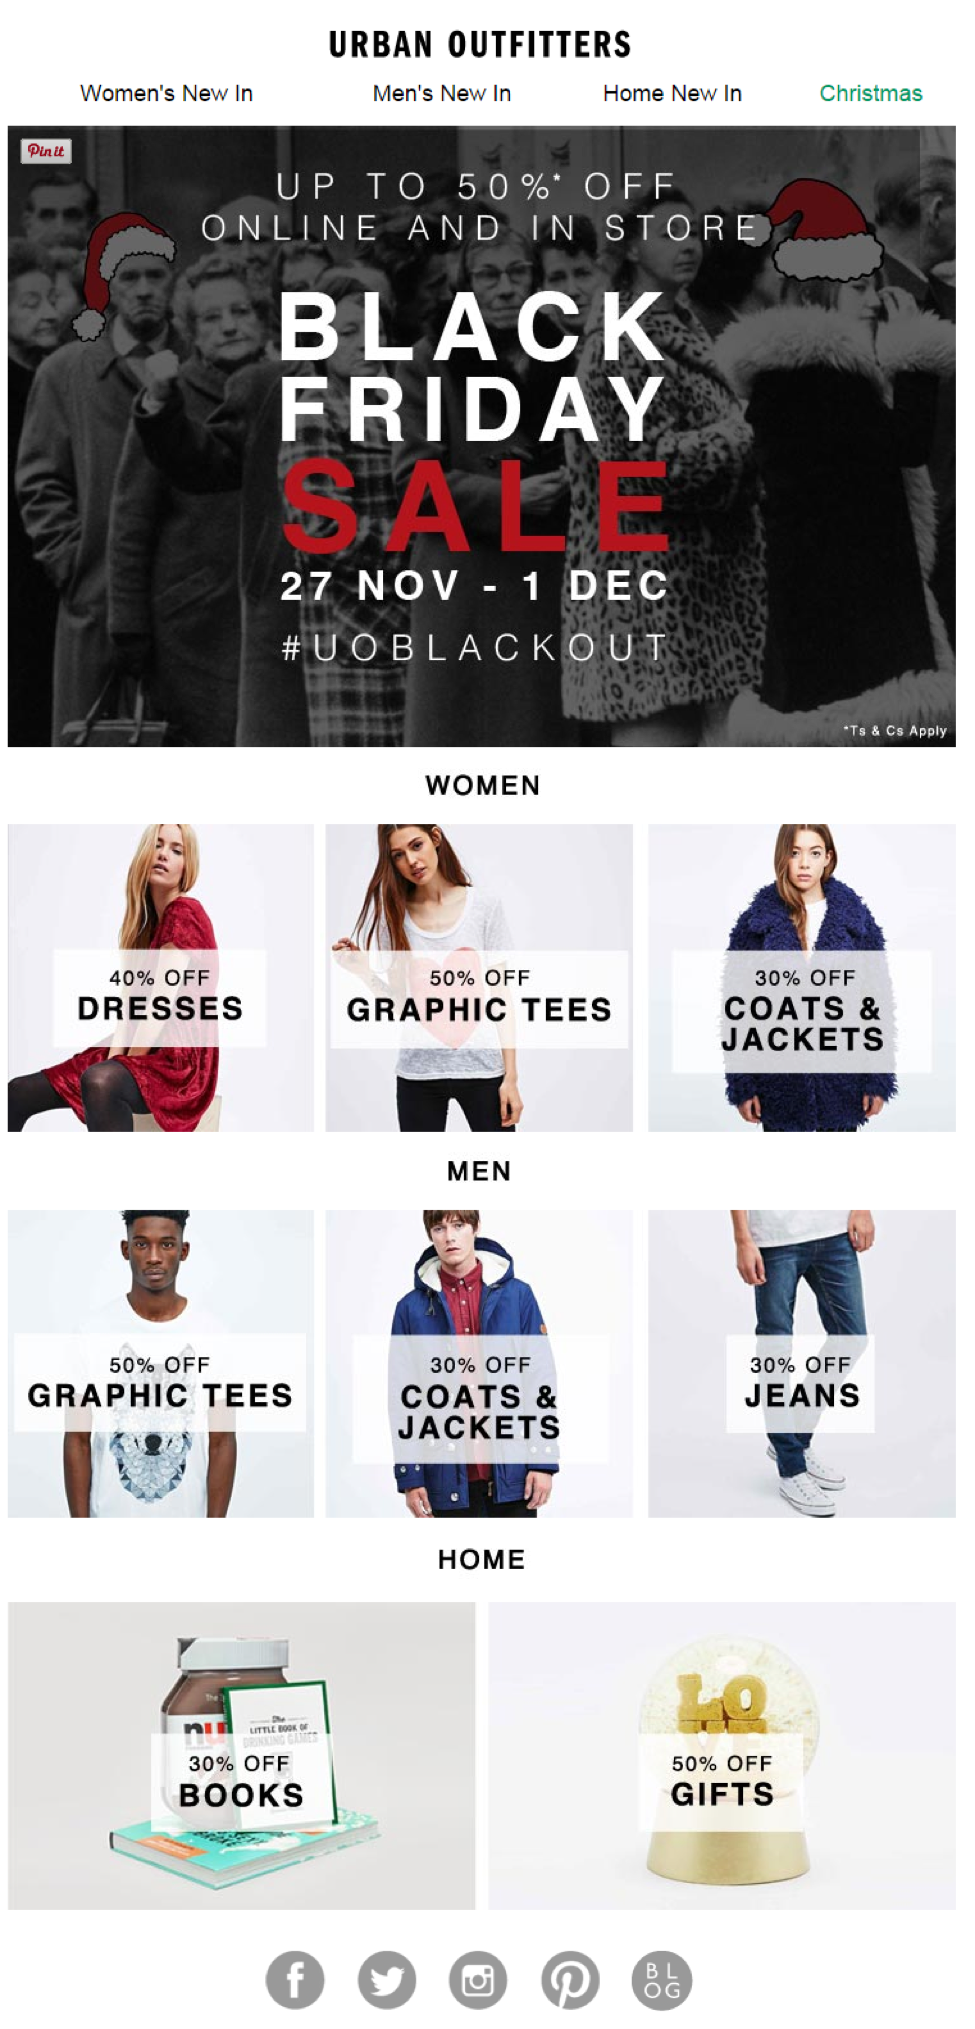 Urban Outfitters - eCommerce Email Marketing